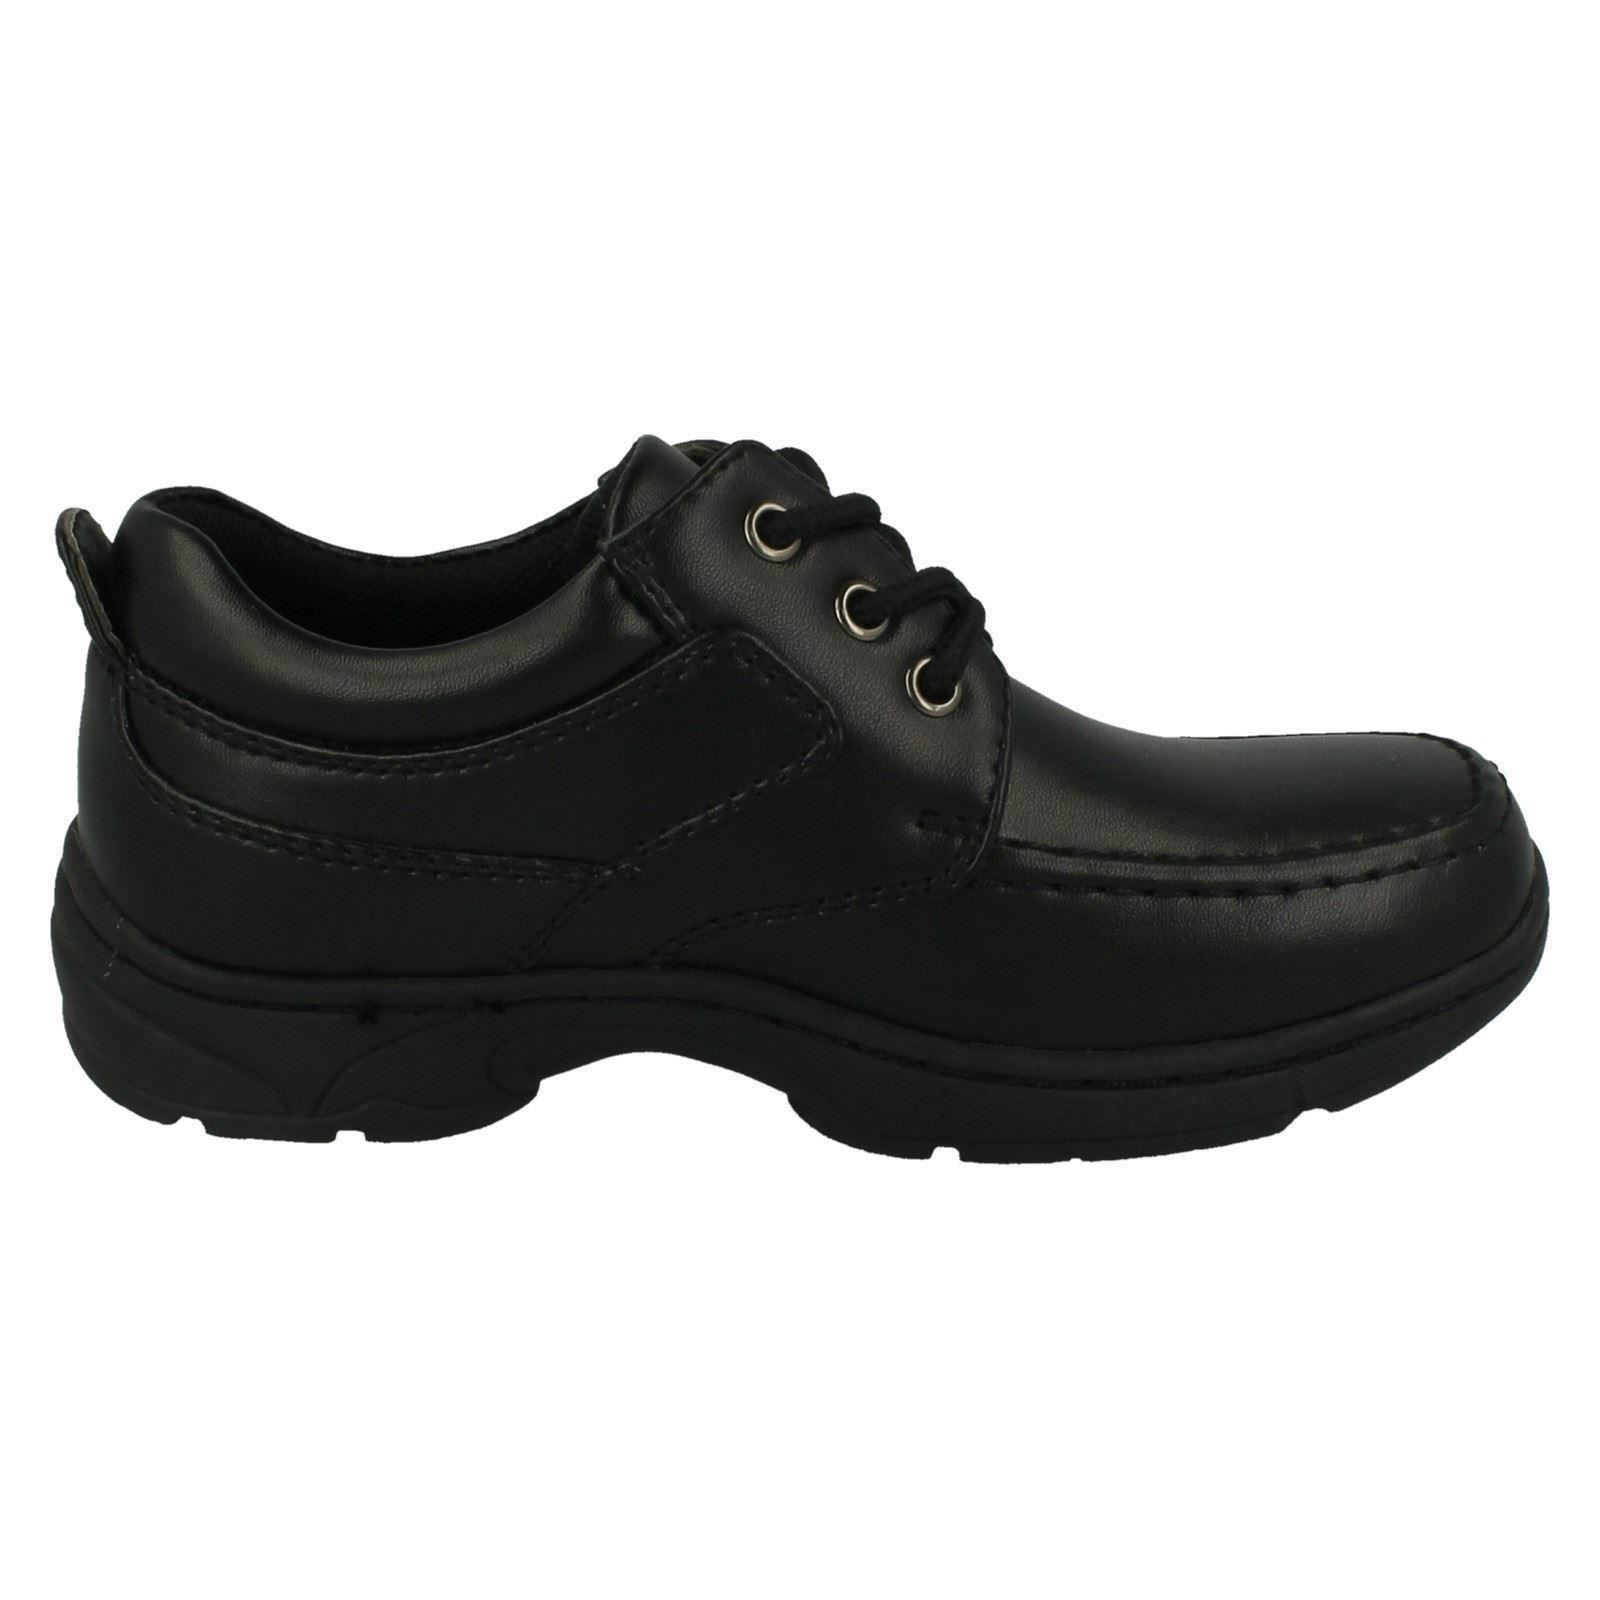 Boys Cool For School Lace Up School Shoes With Block Heel